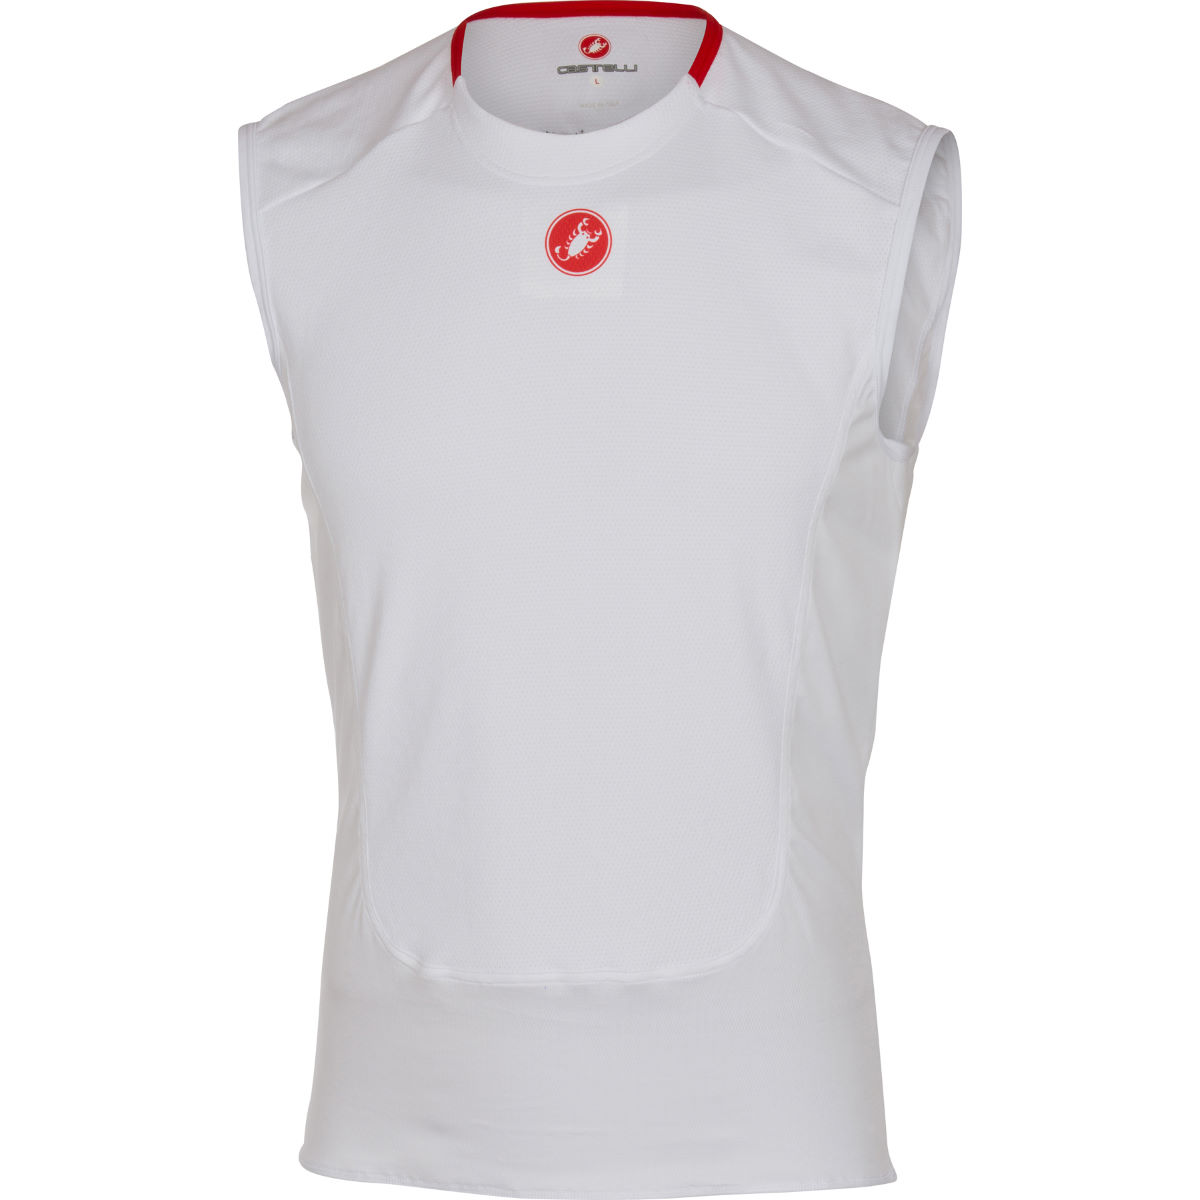 Castelli prosecco sleeveless base layer internal white ss17 cs165300011